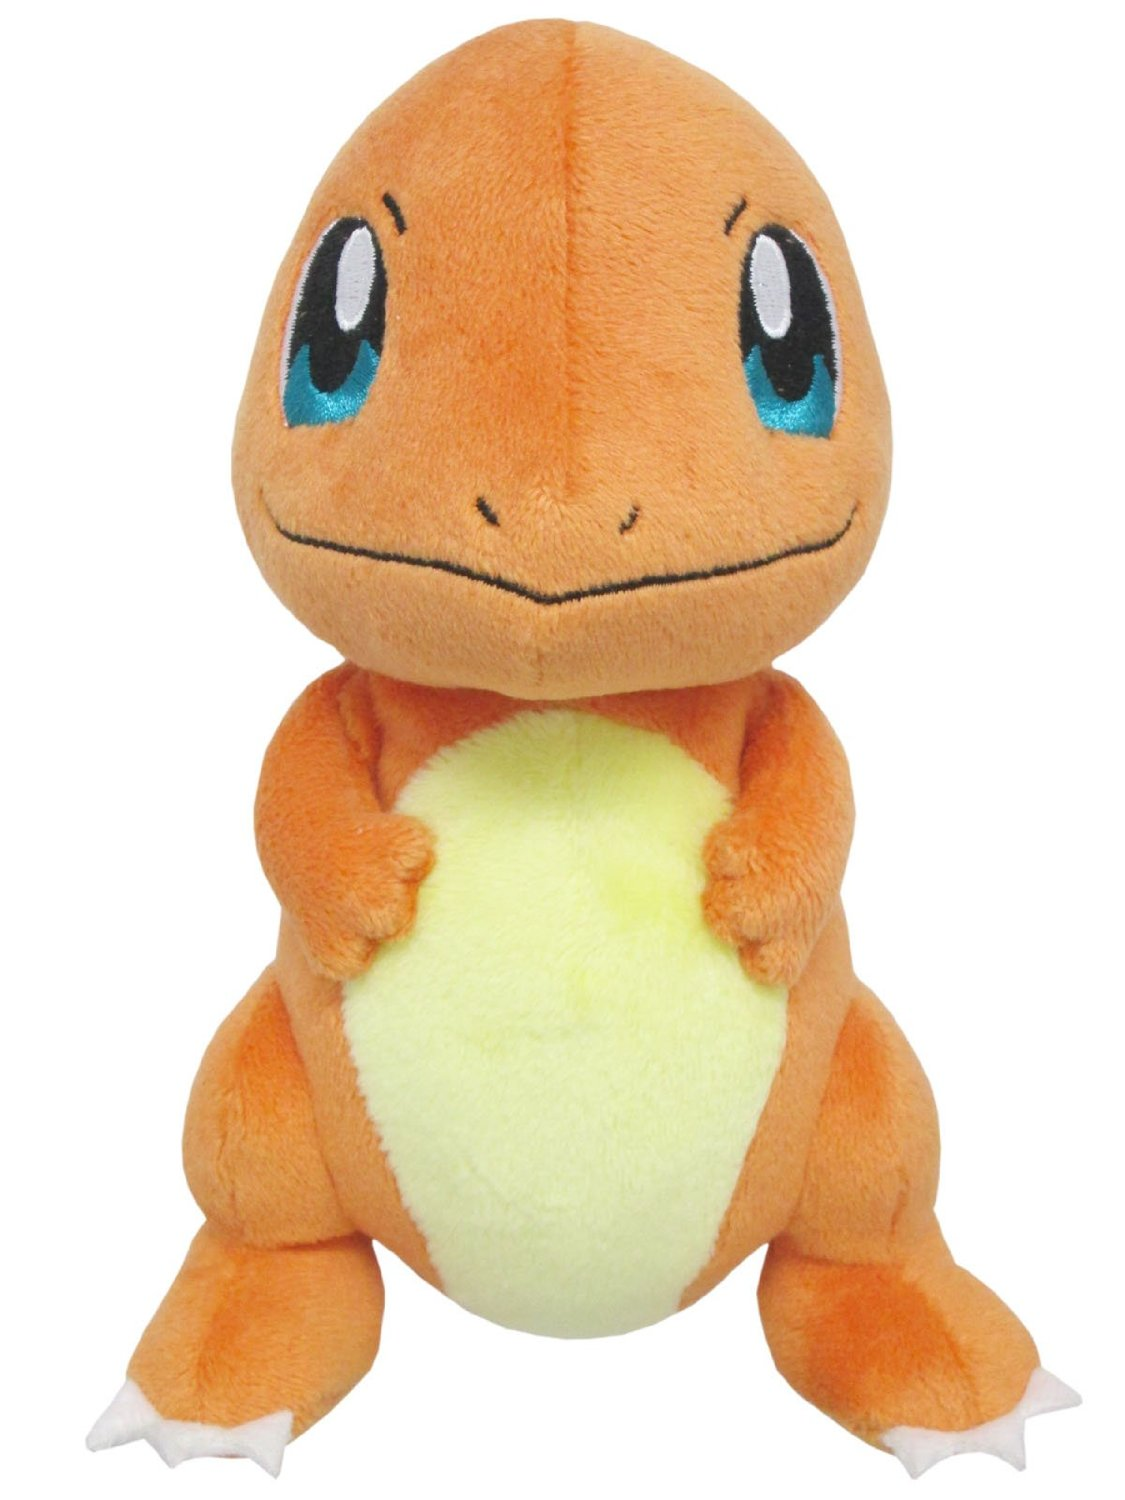 f74f6d75f65 Sanei Pokemon All Star Series PP18 Charmander Stuffed Plush